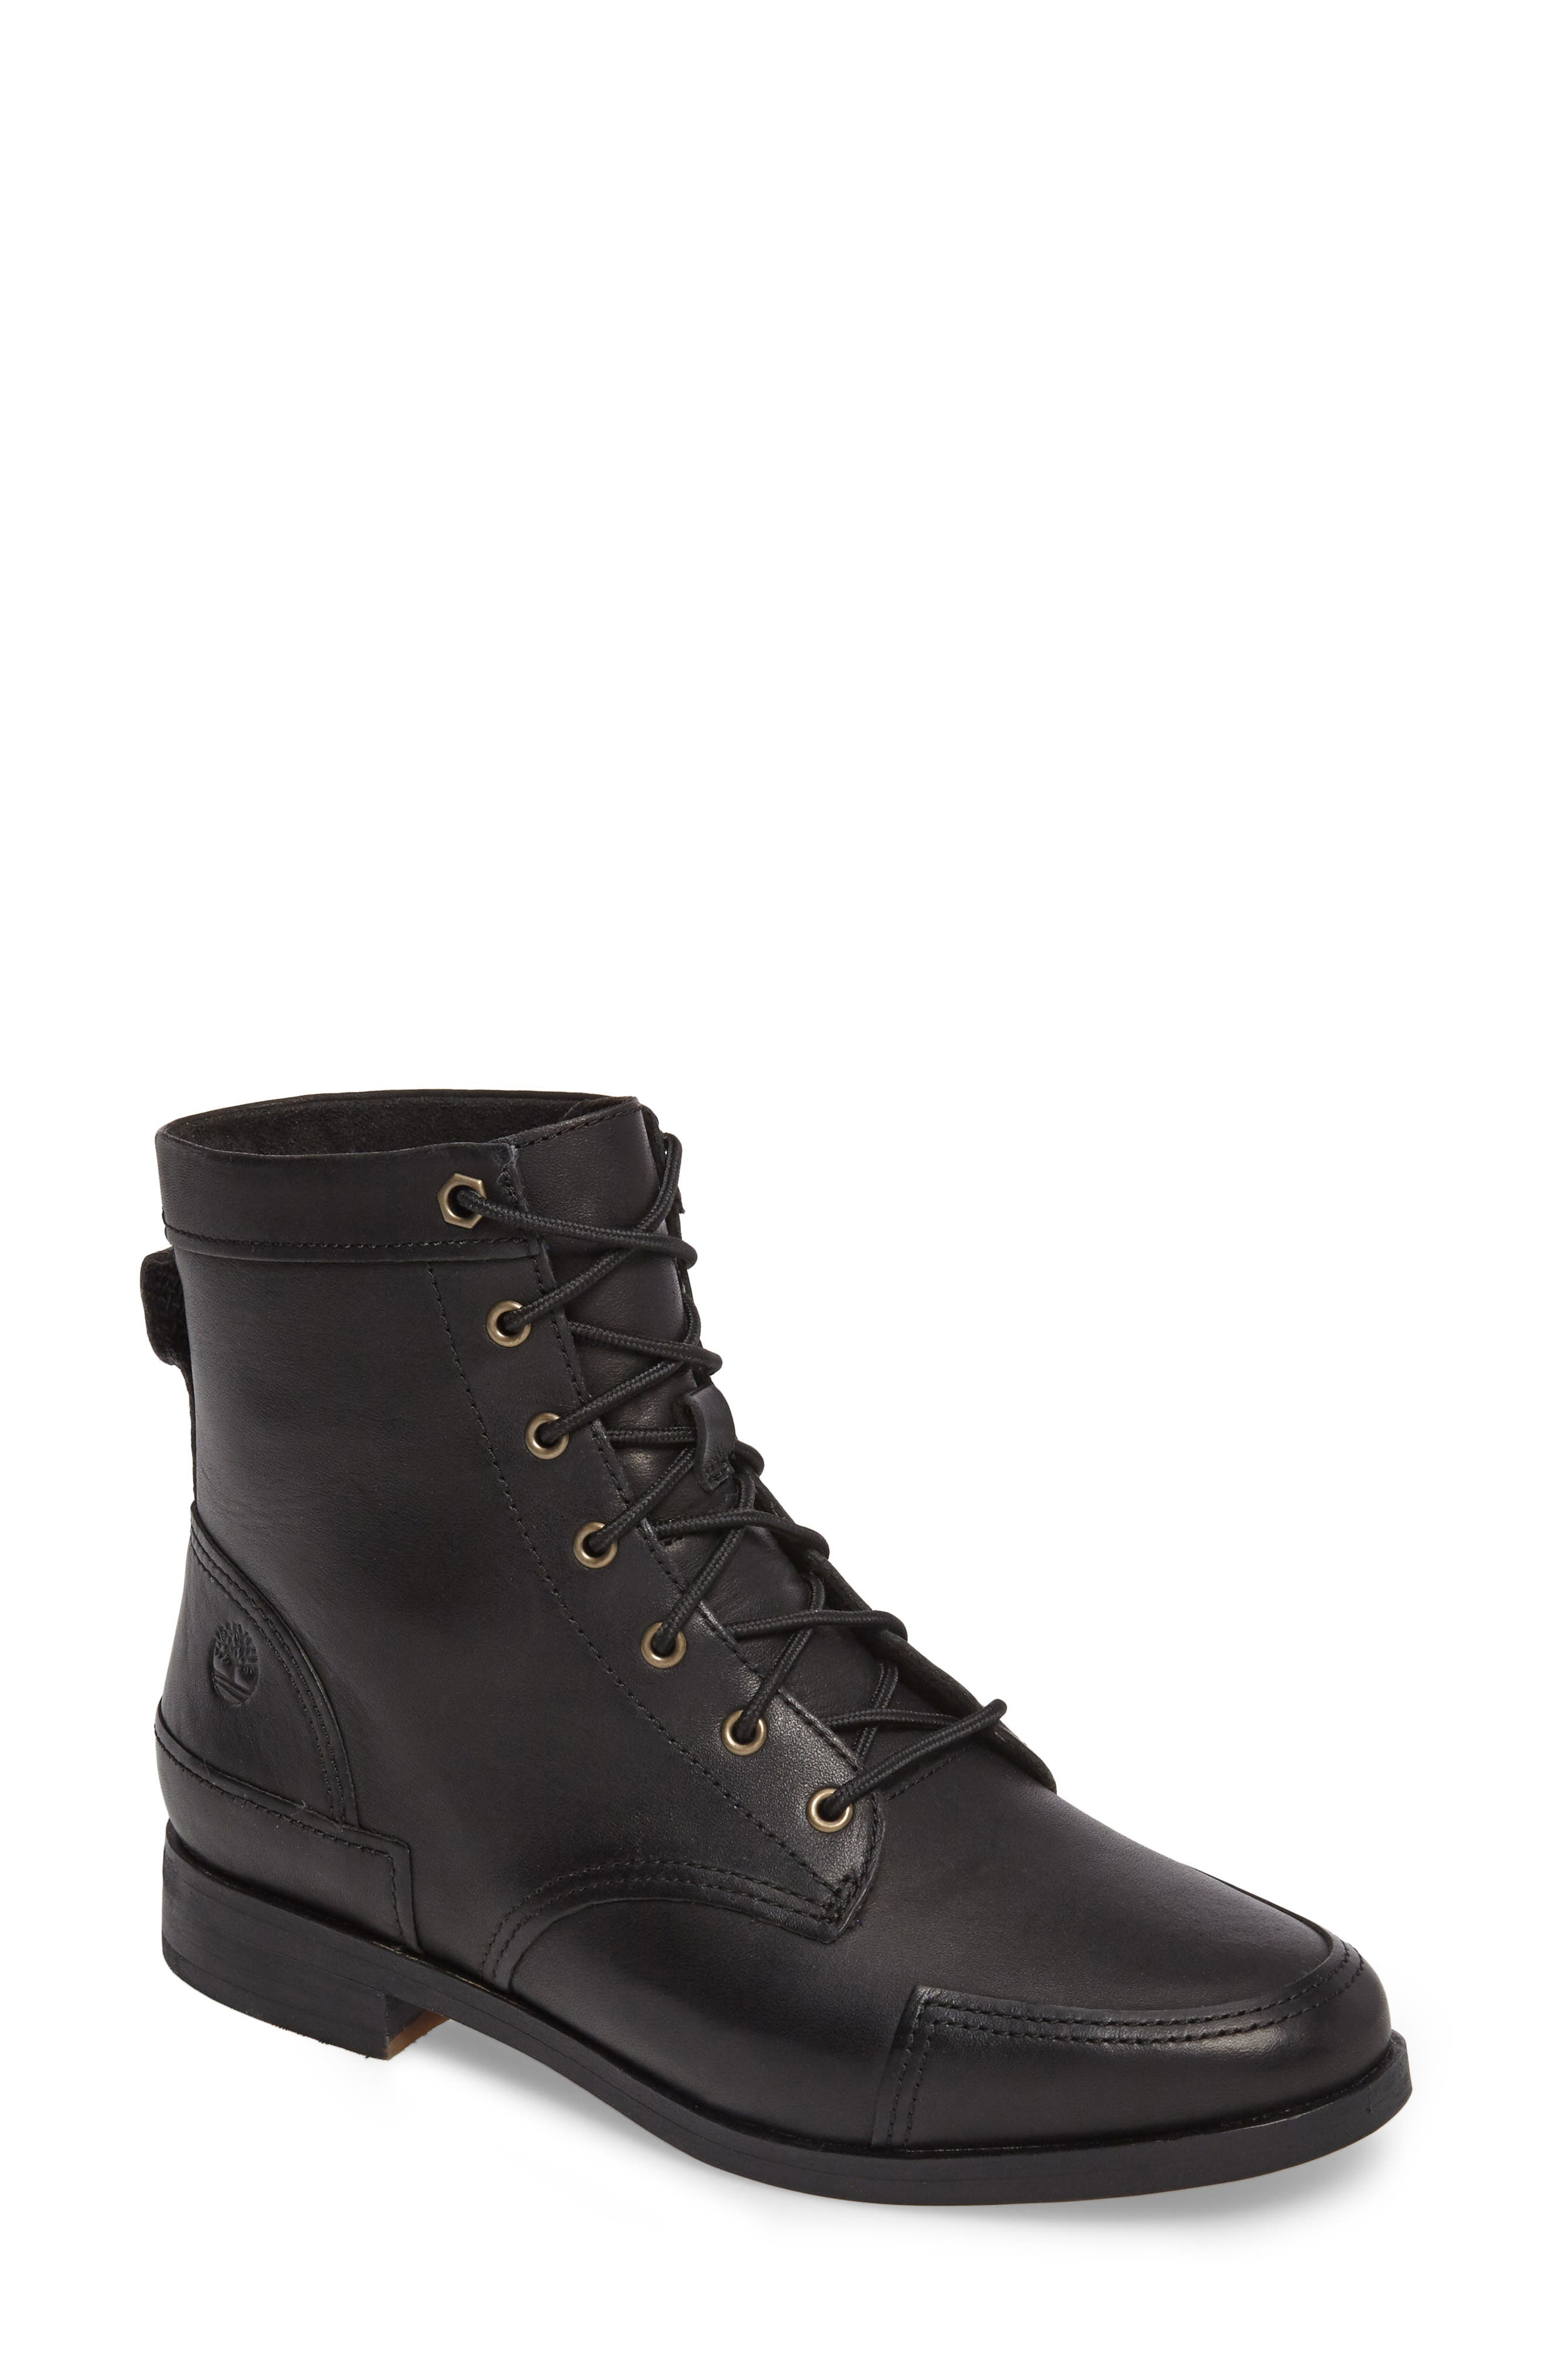 Somers Falls Lace-Up Boot,                             Main thumbnail 1, color,                             001